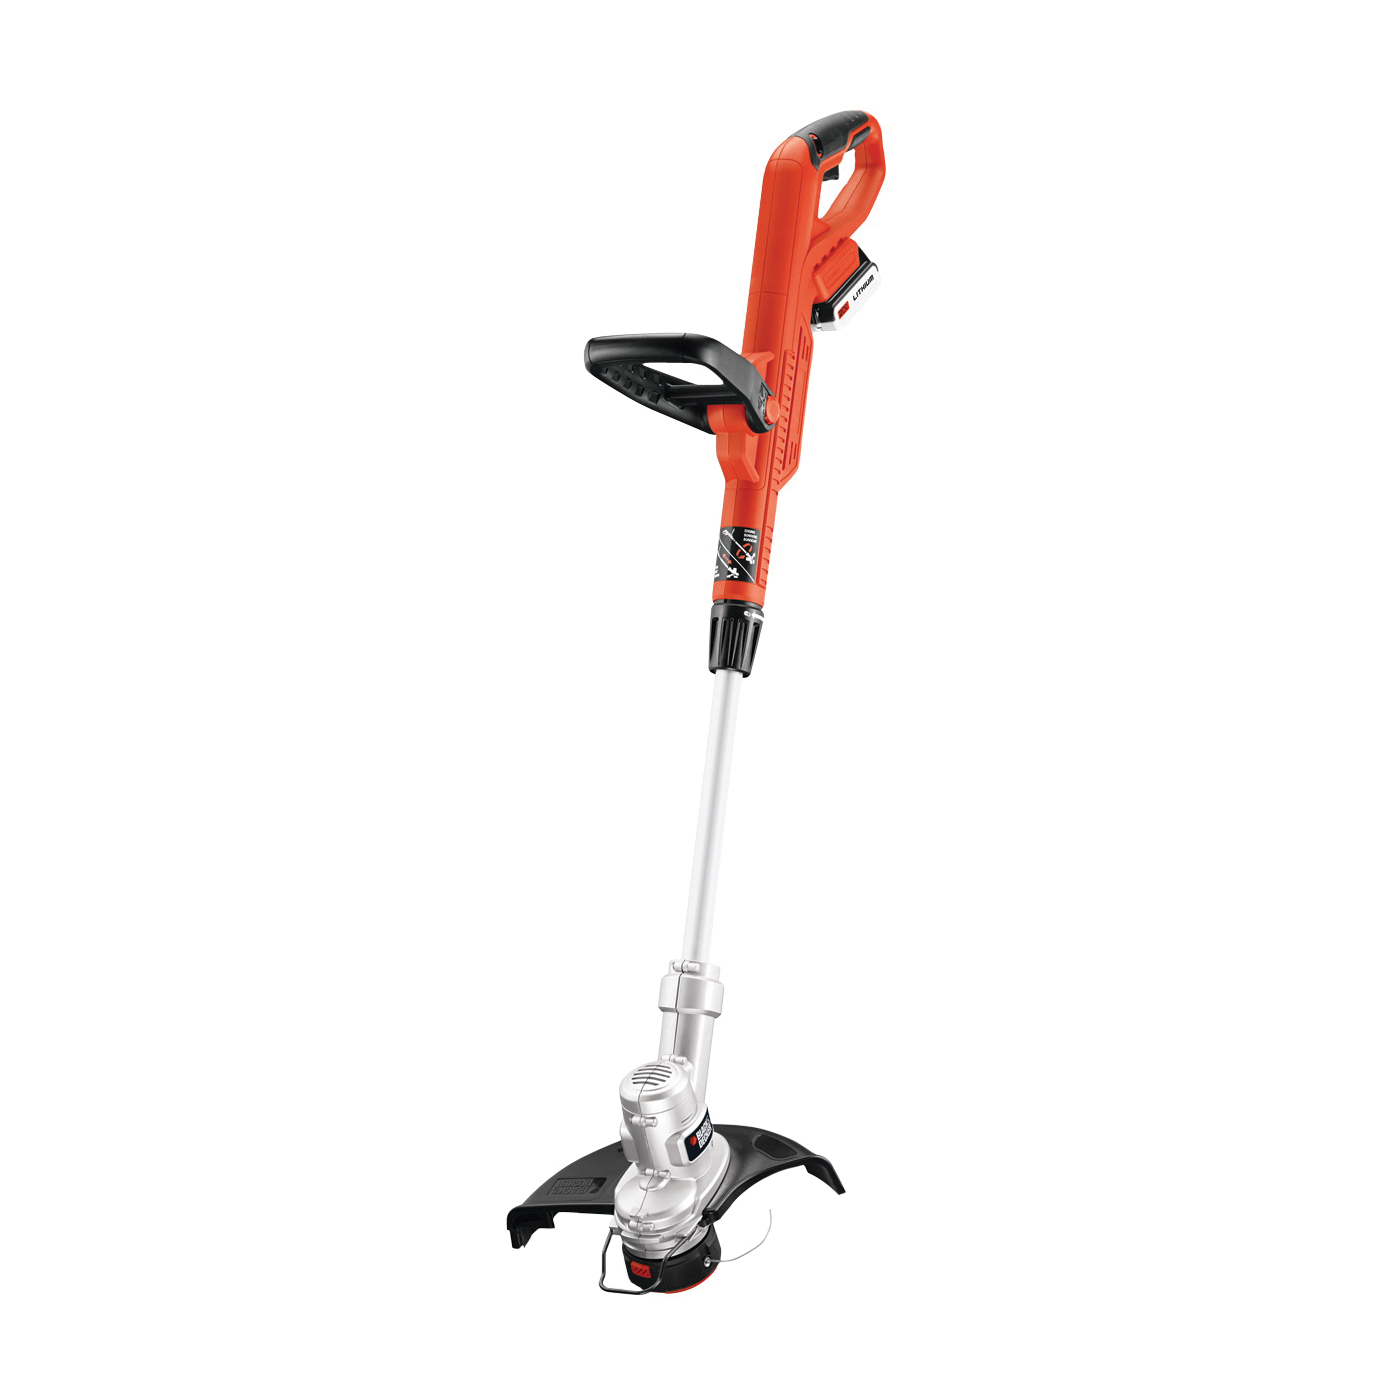 Picture of Black+Decker LST300 String Trimmer and Edger, 2 A, 20 V, 12-1/2 in L Shaft